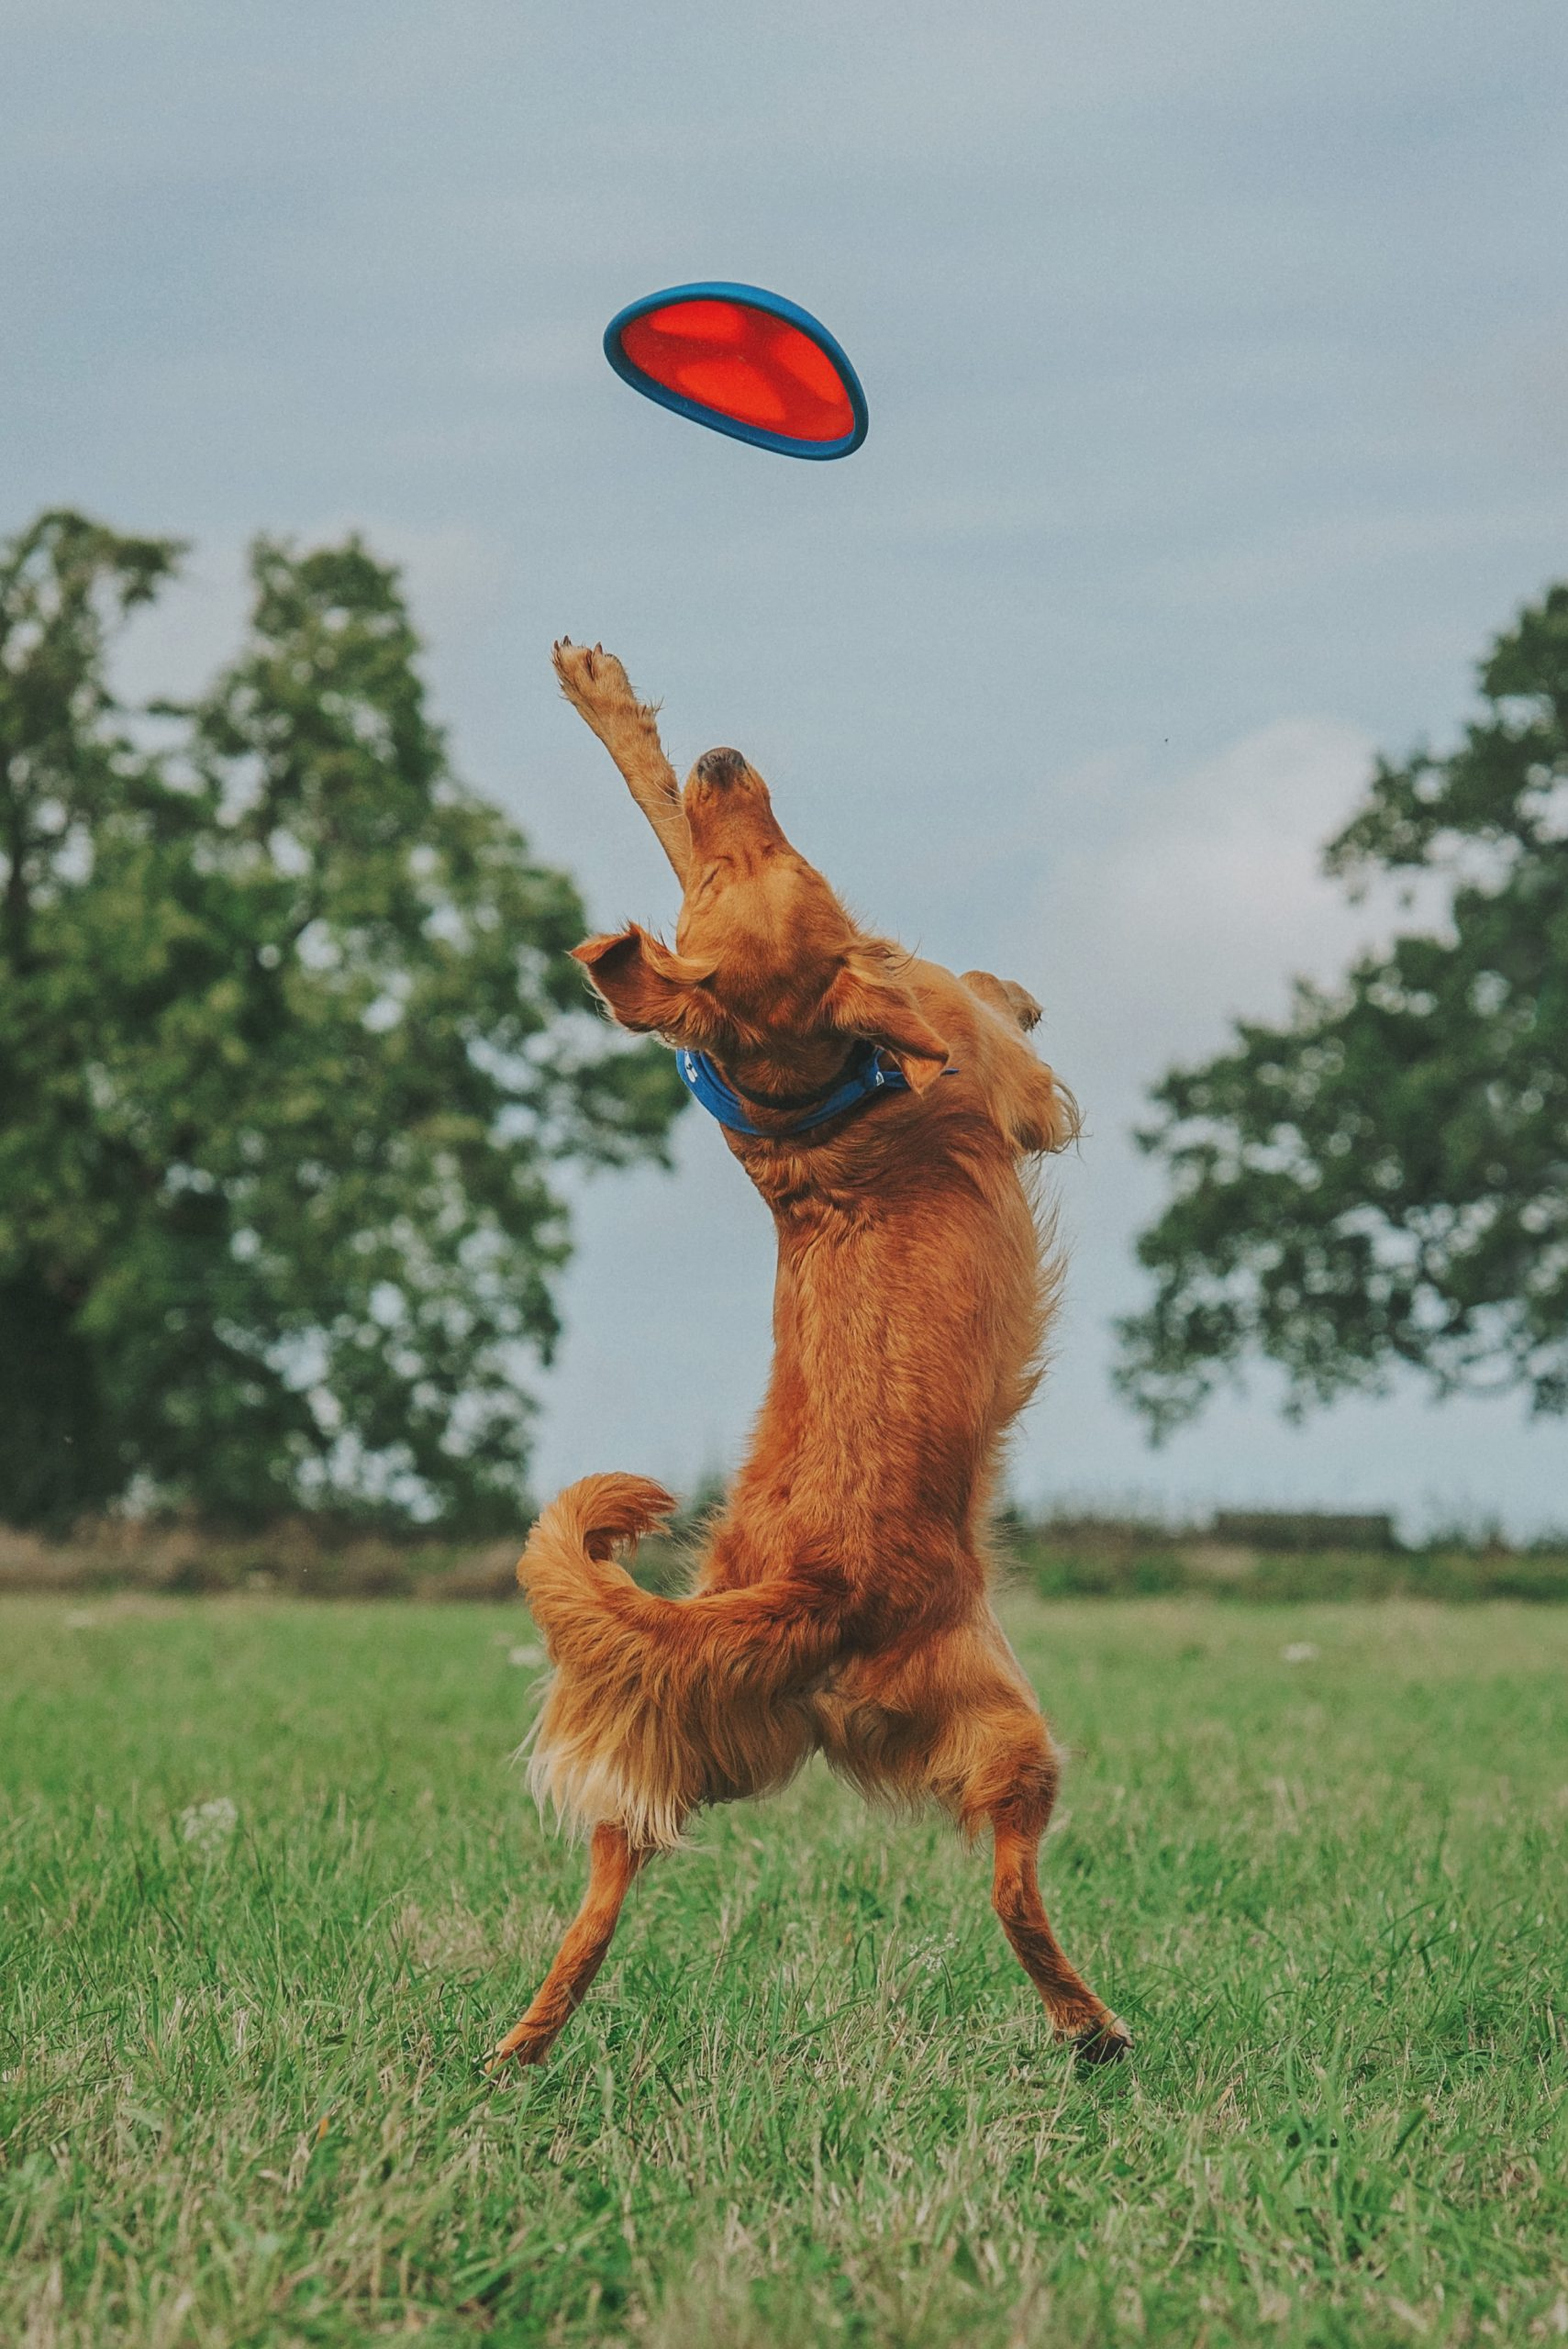 Celebrating National Pet Month with our top 5 pet campaigns